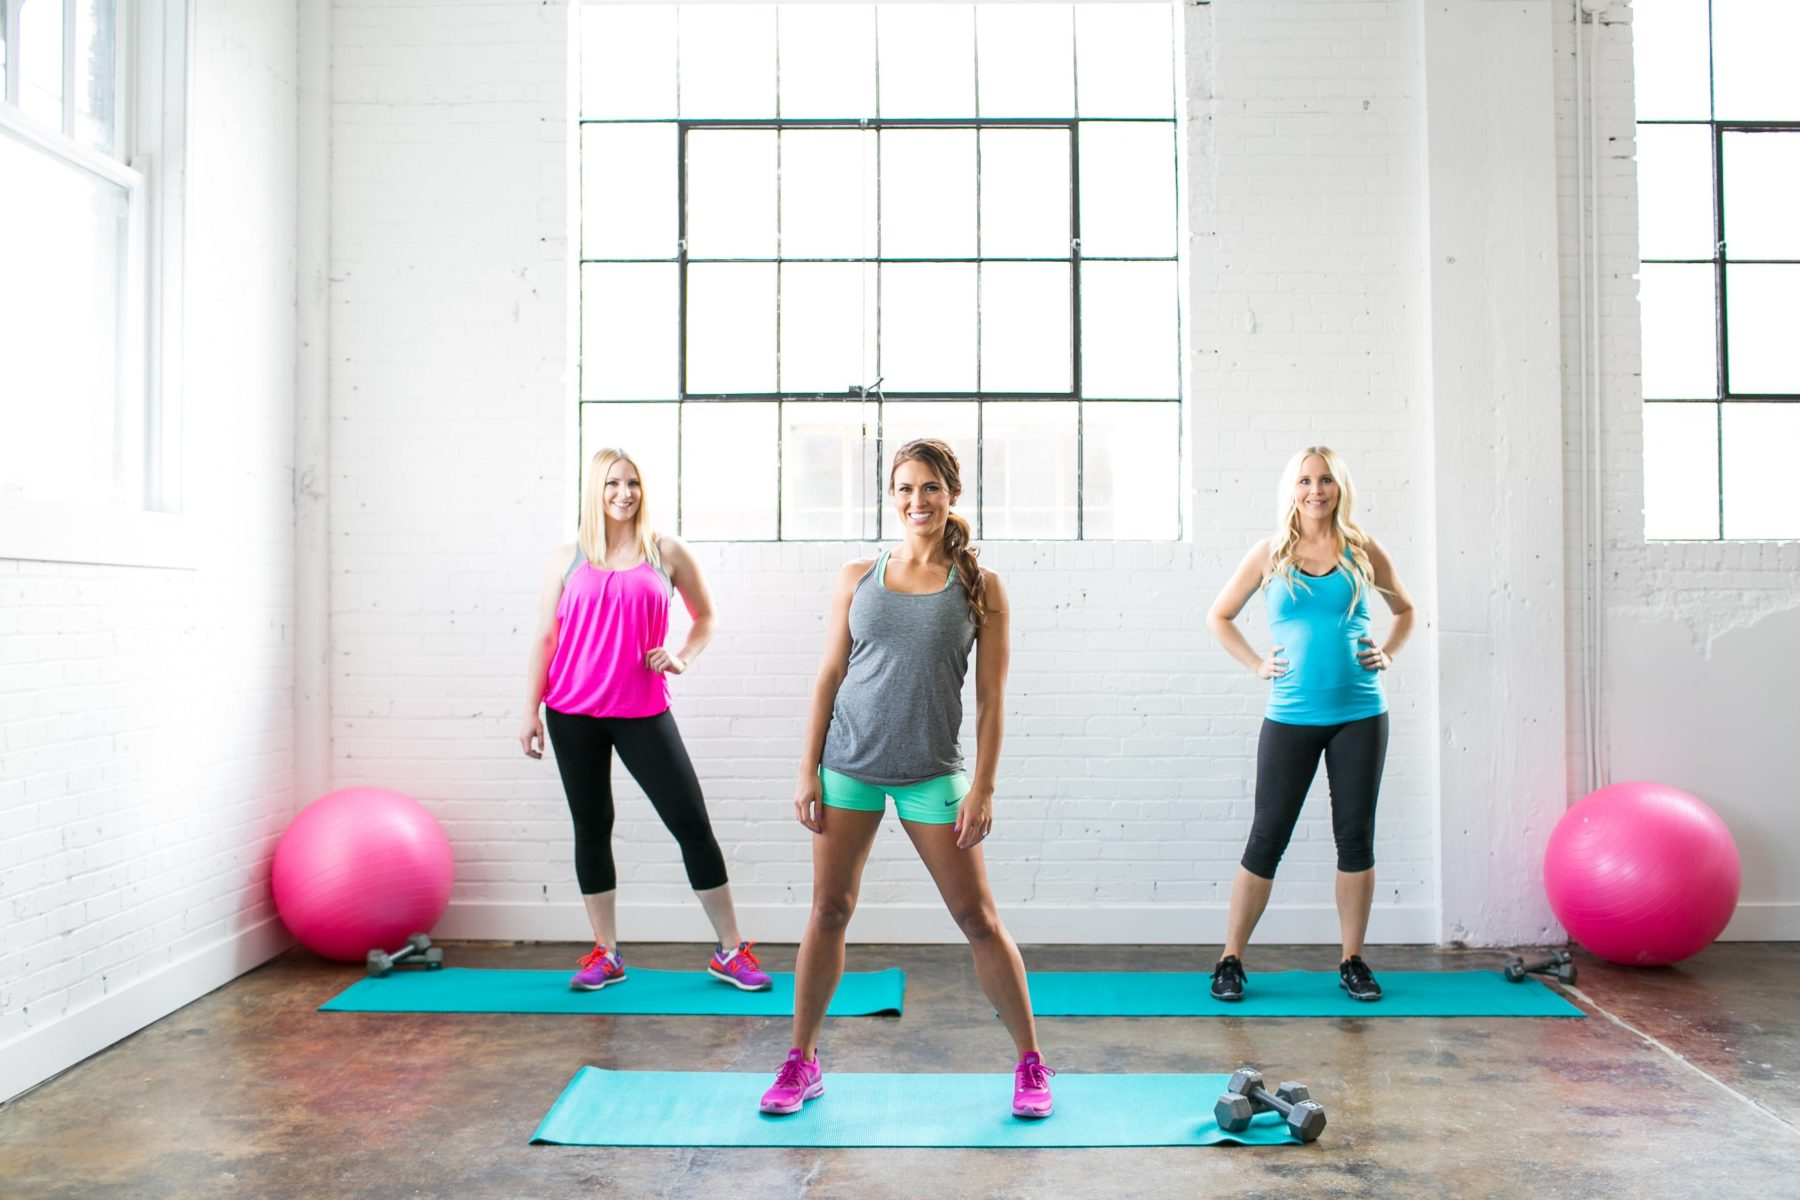 15 Day Mommy Fit 3 women getting ready to exercise